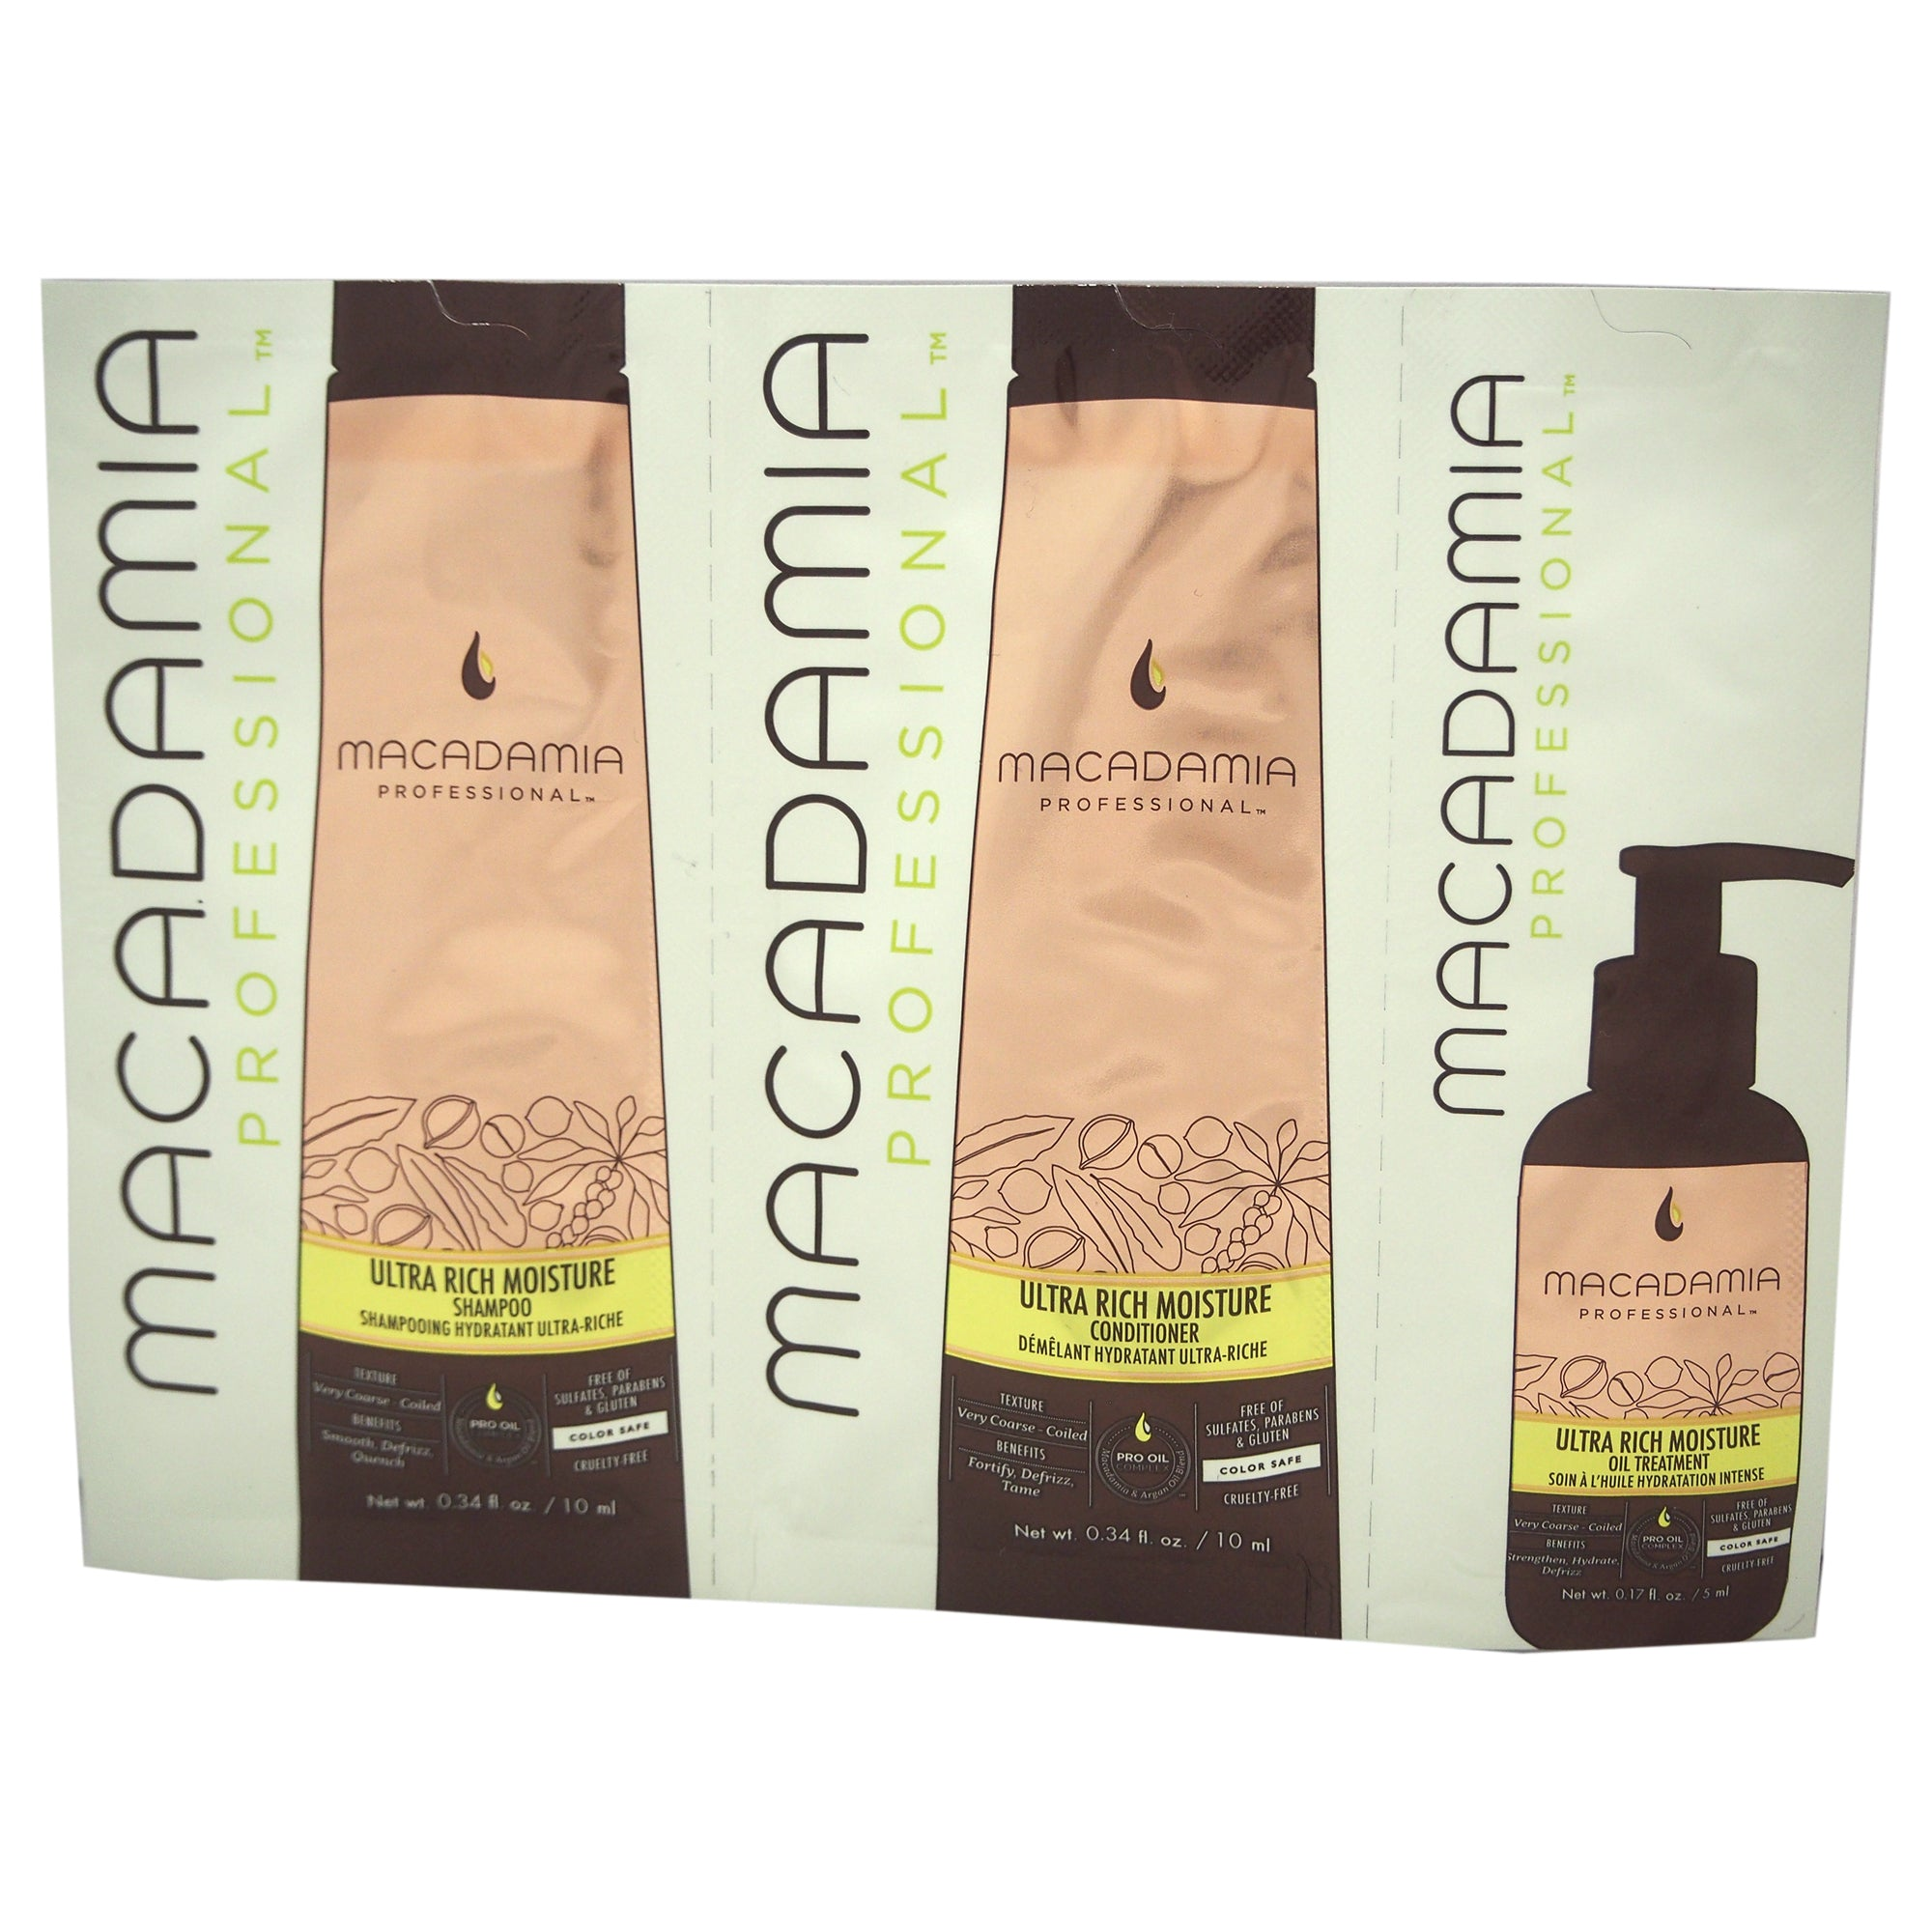 Macadamia Professional Ultra Rich Moisture Shampoo, Conditioner & Oil Treatment